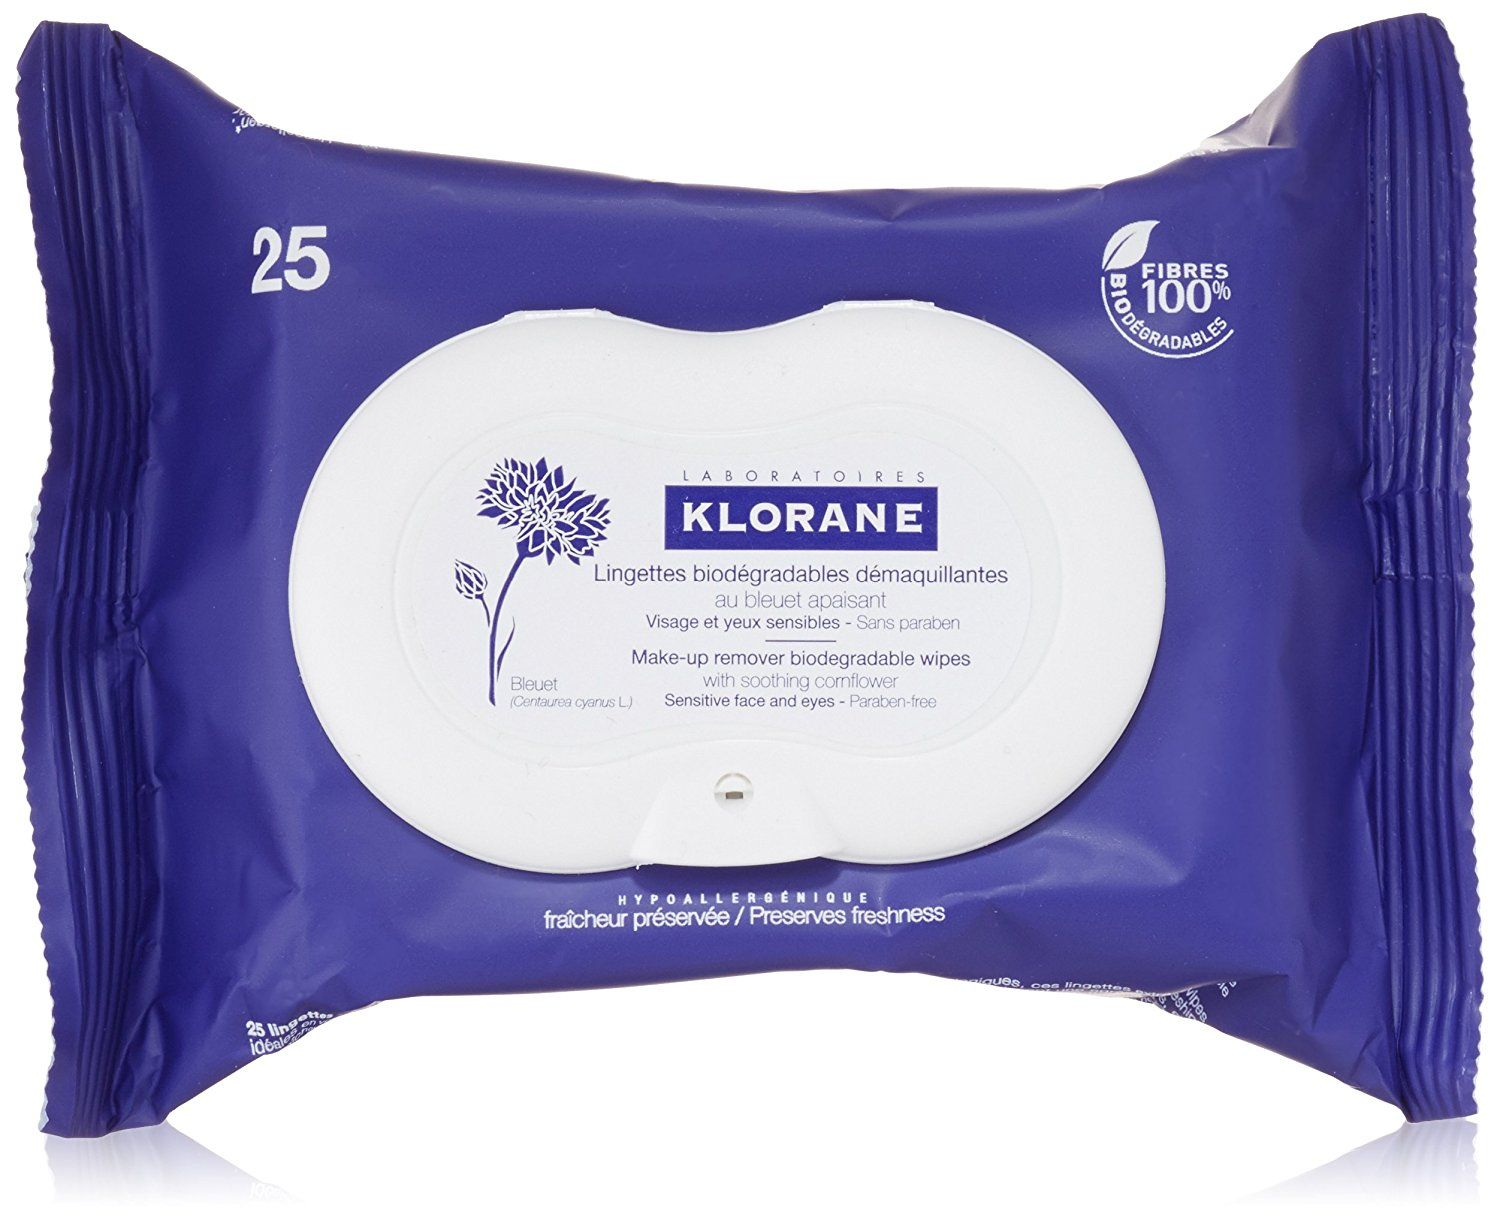 Klorane MakeUp Remover Biodegradable Wipes with Soothing